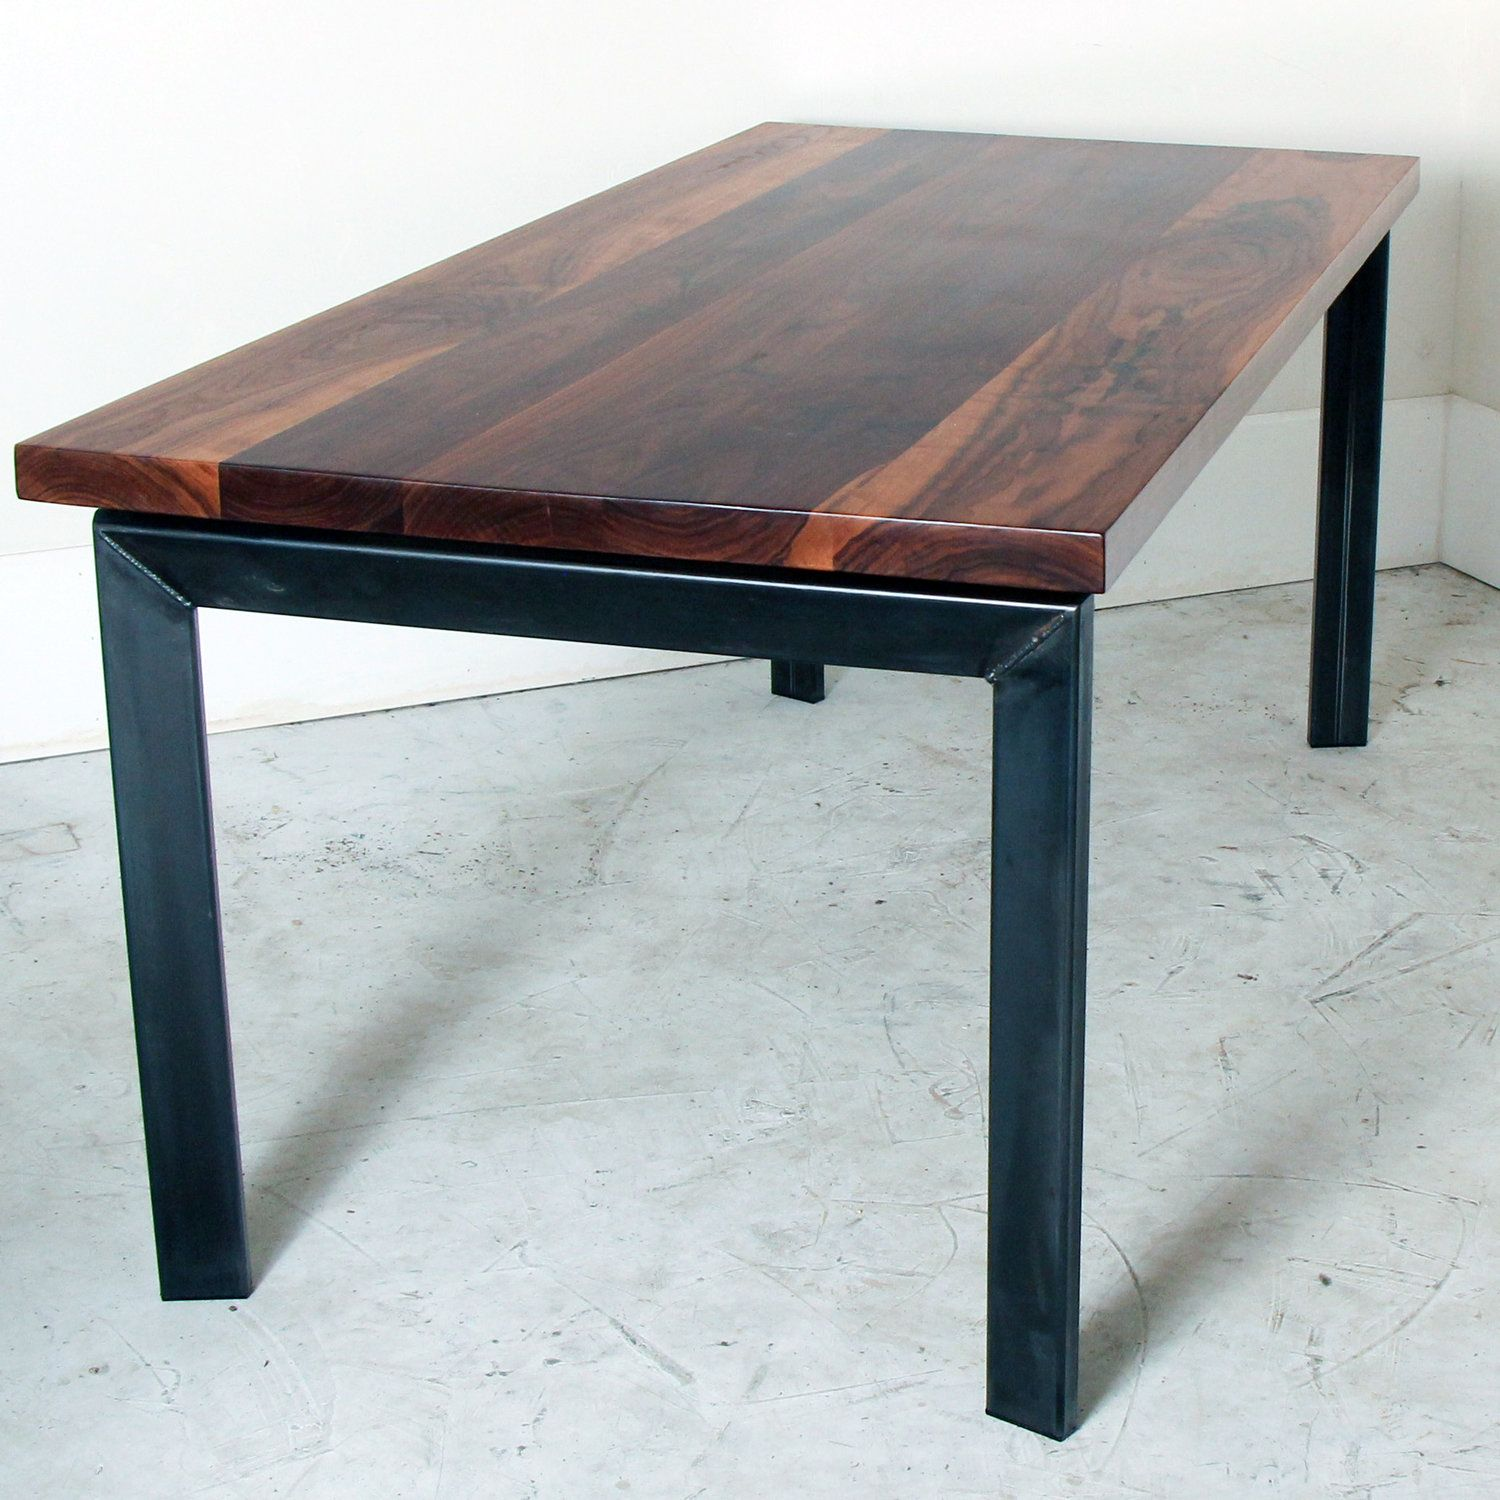 Emerson Walnut Dining Table Walnut Dining Table Dining Table Table